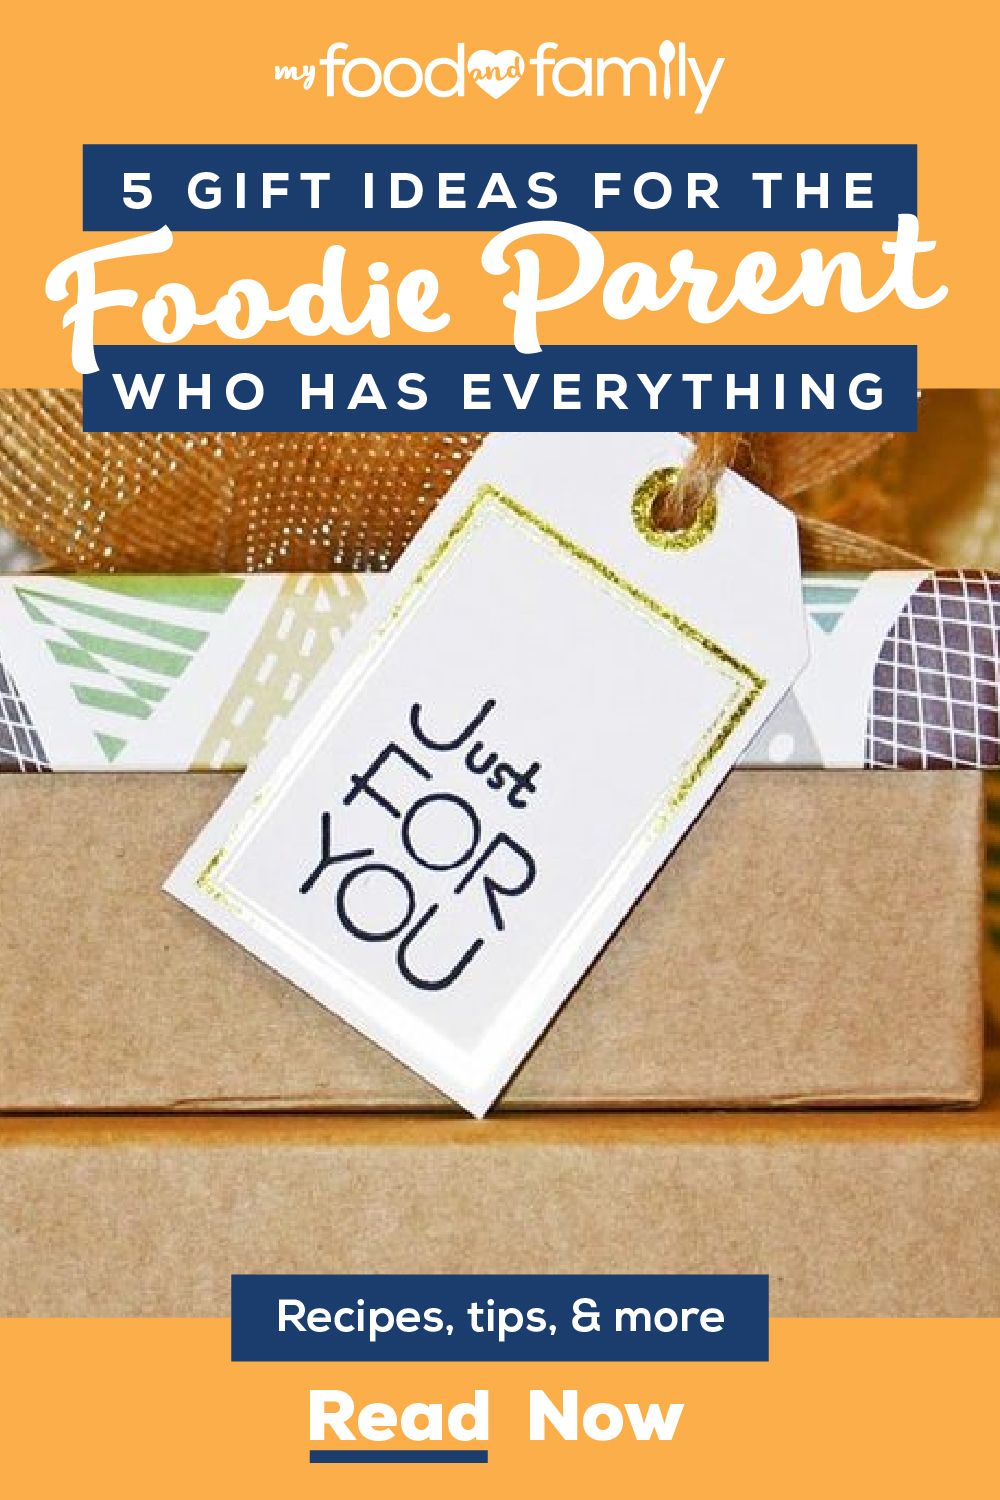 5 Gift Ideas for the Foodie Parent Who Has Everything